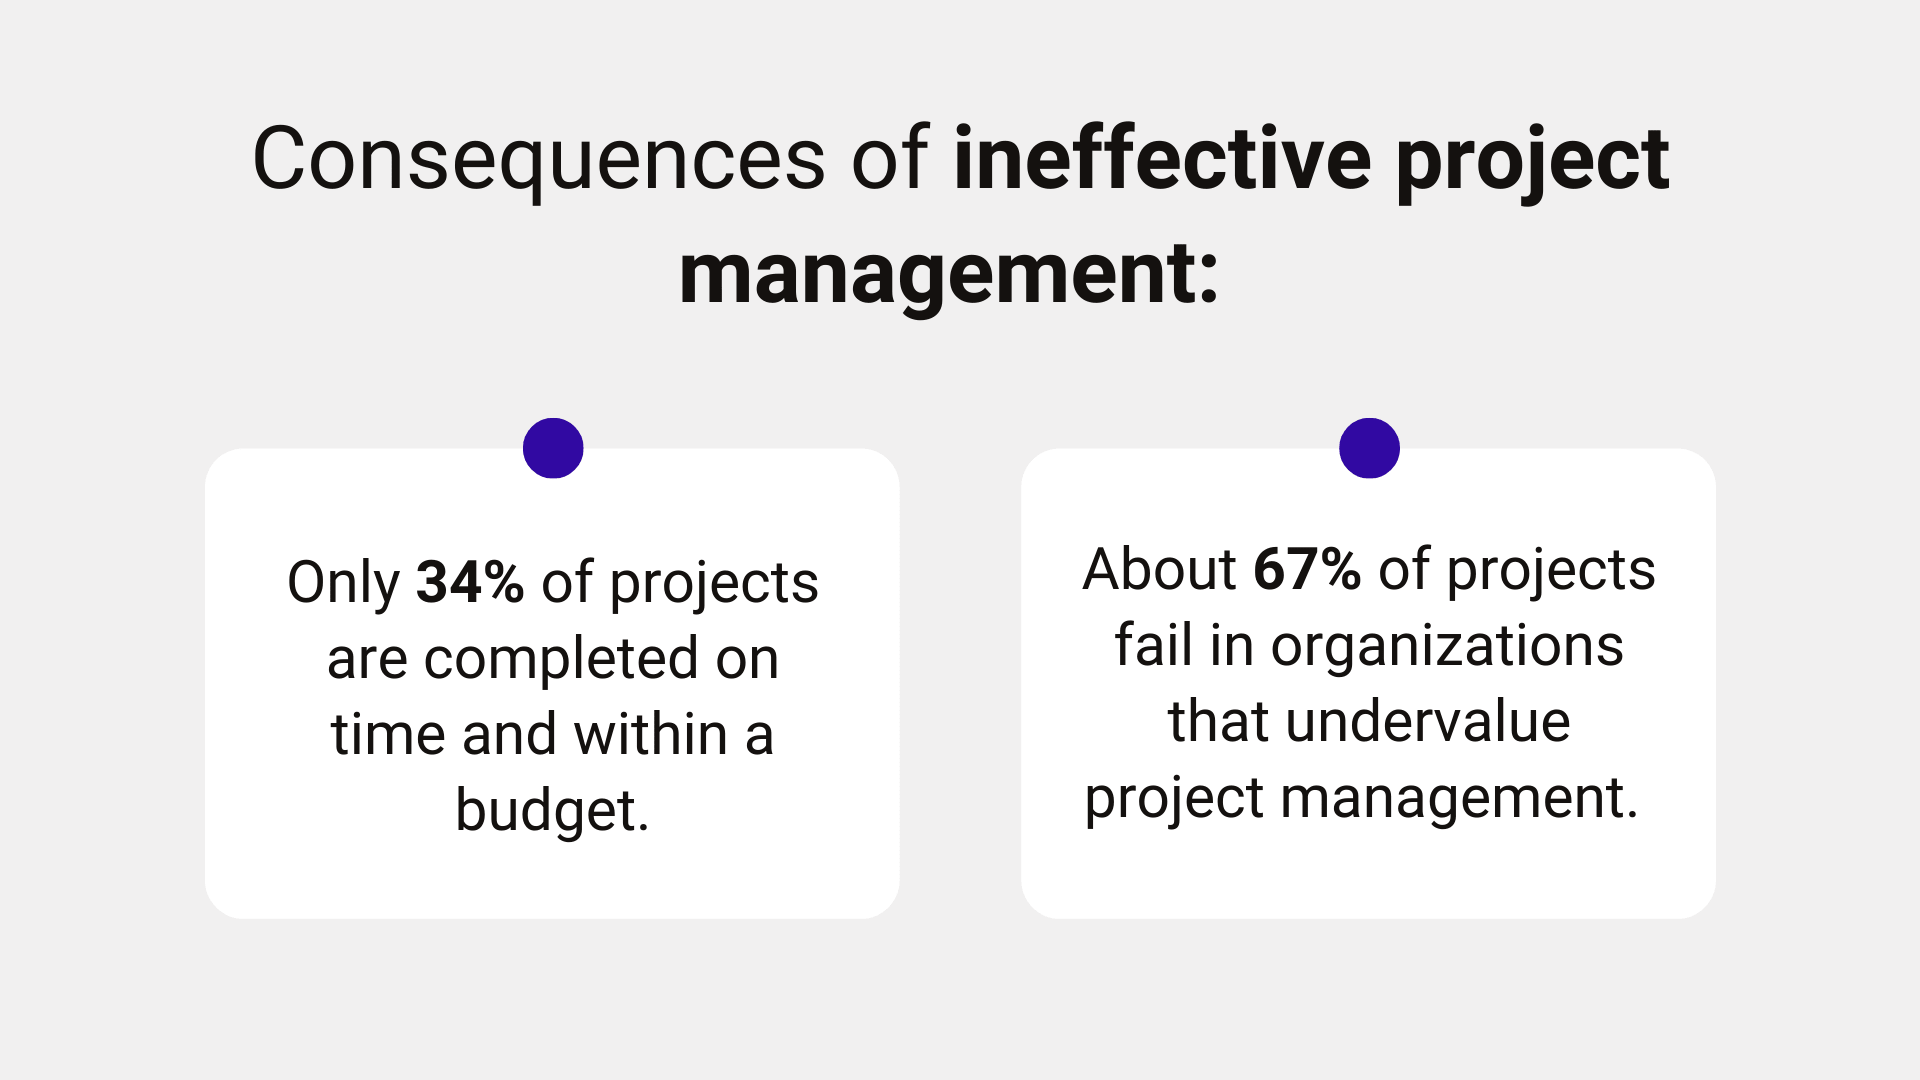 Consequences of ineffective project management in software development